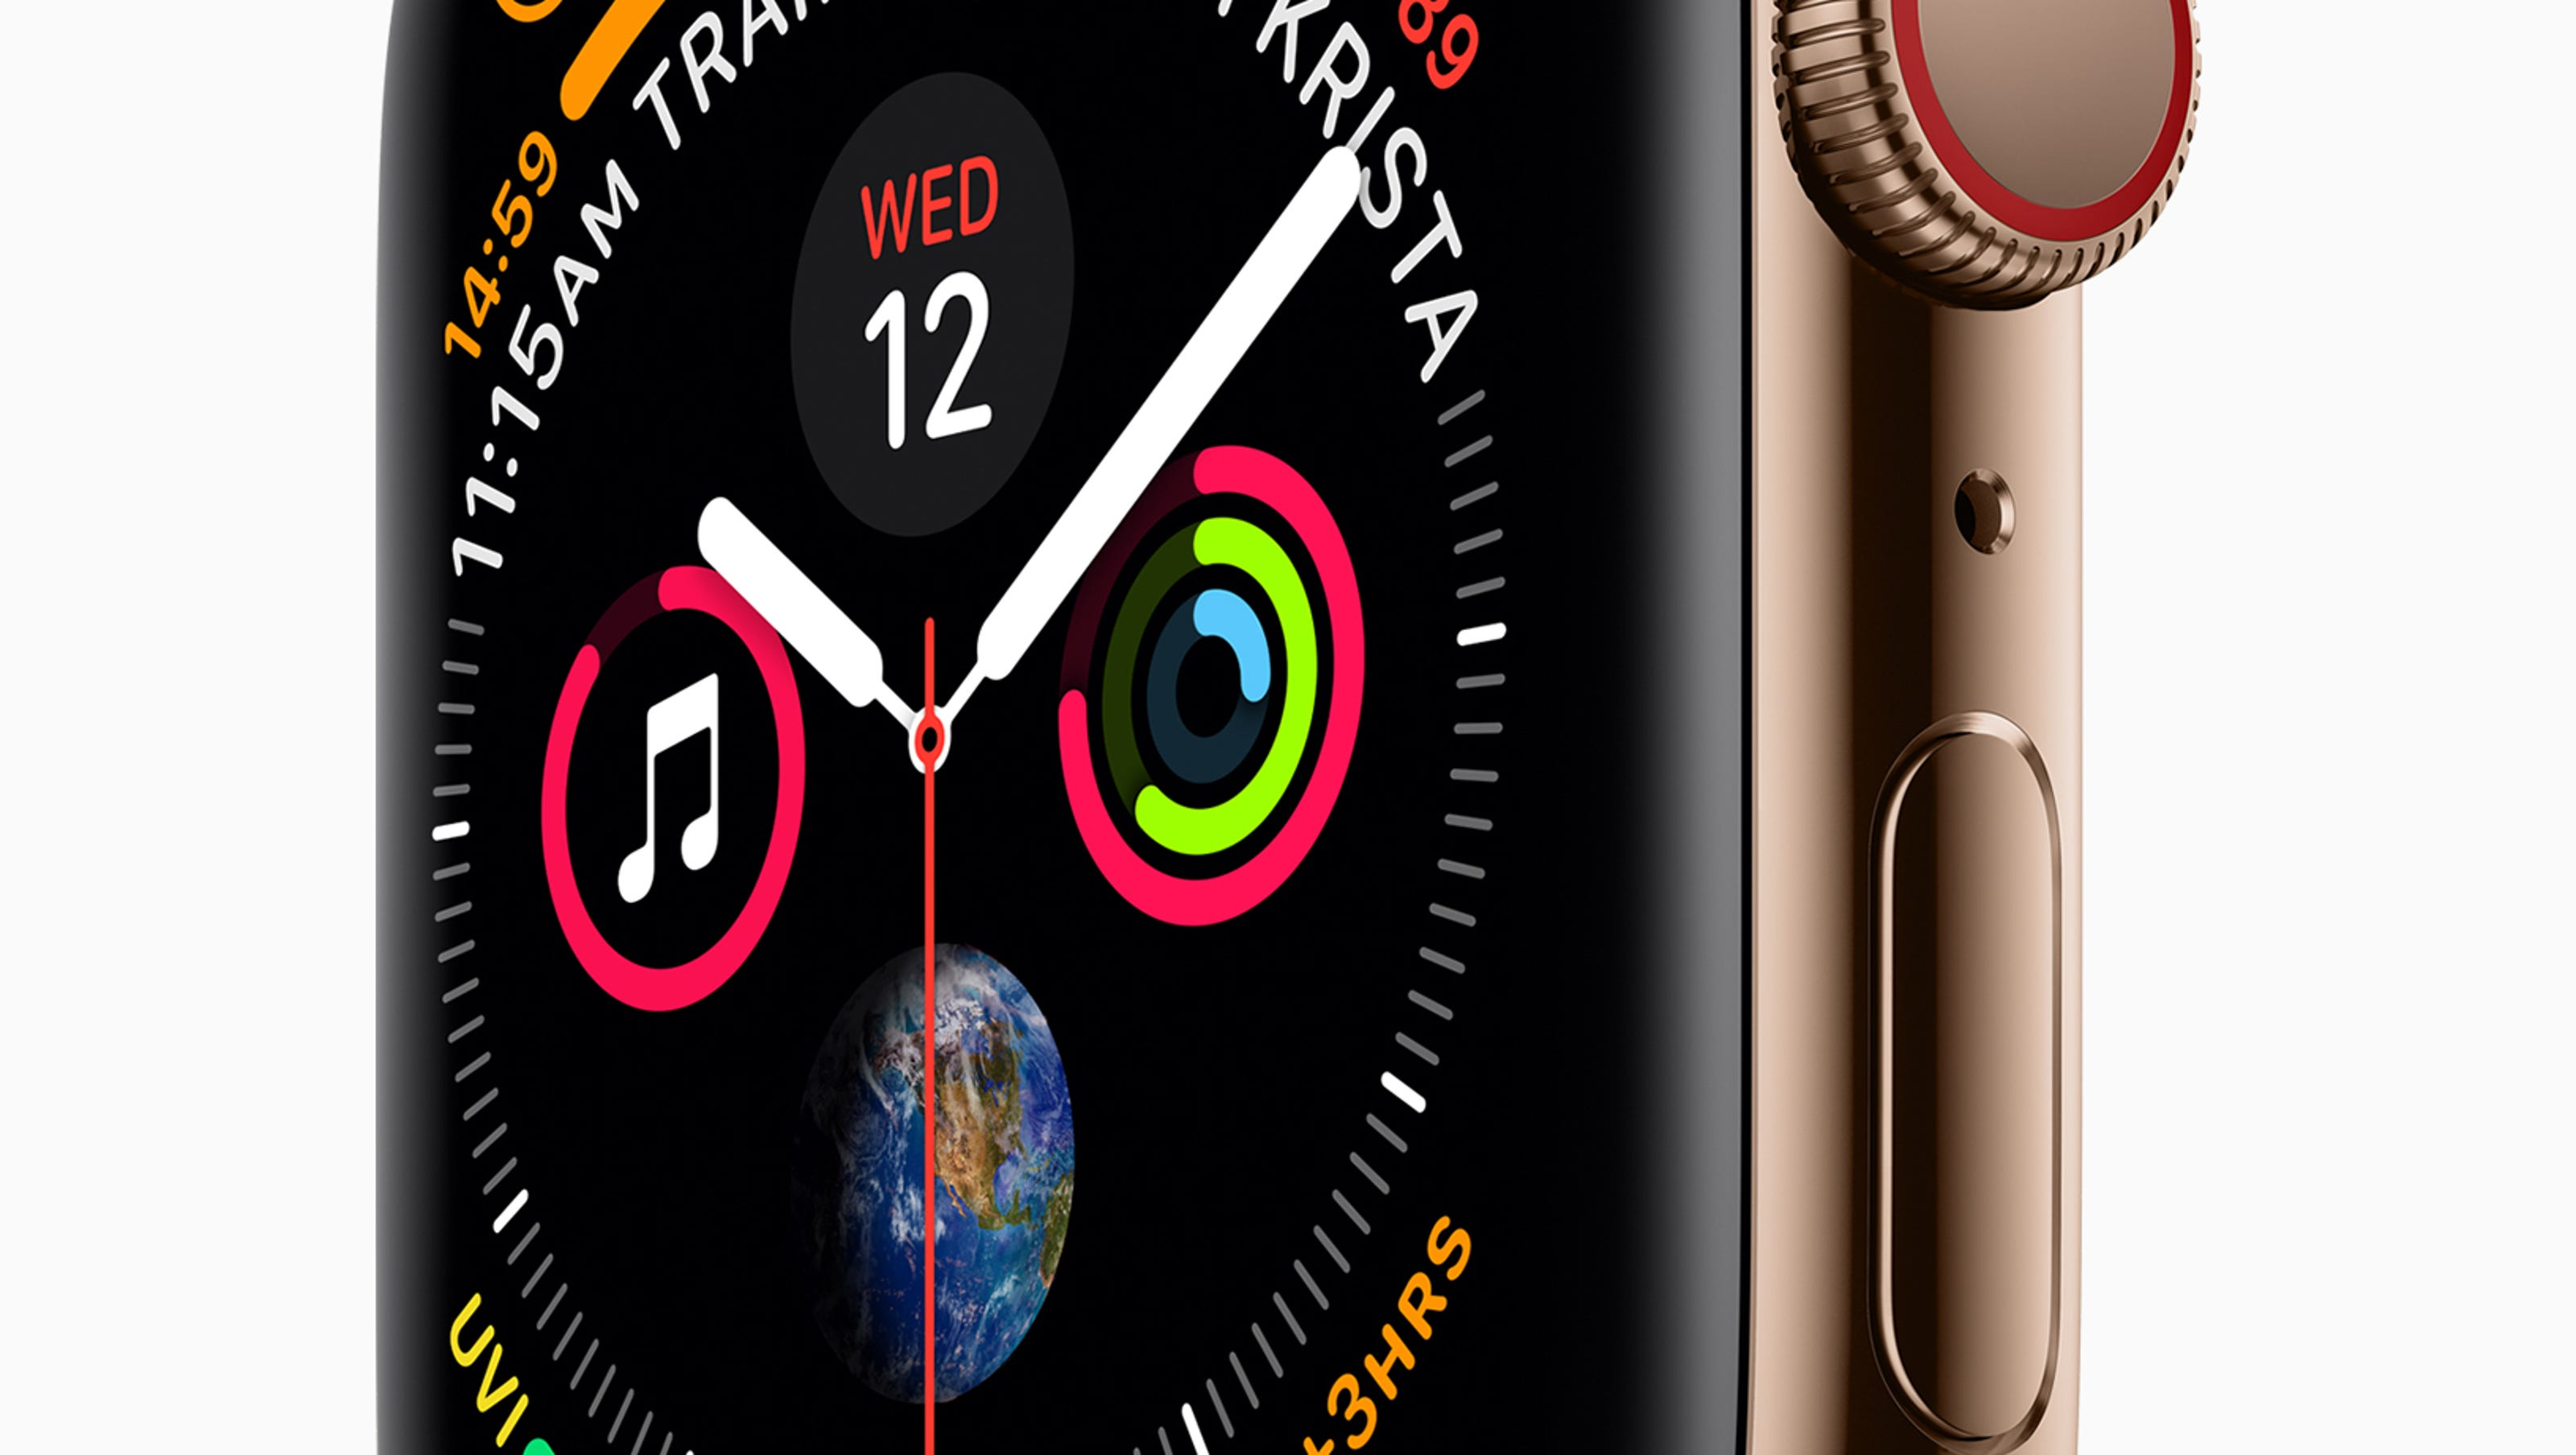 From Fitbit to Apple Watch: A look at today's smartwatch ...